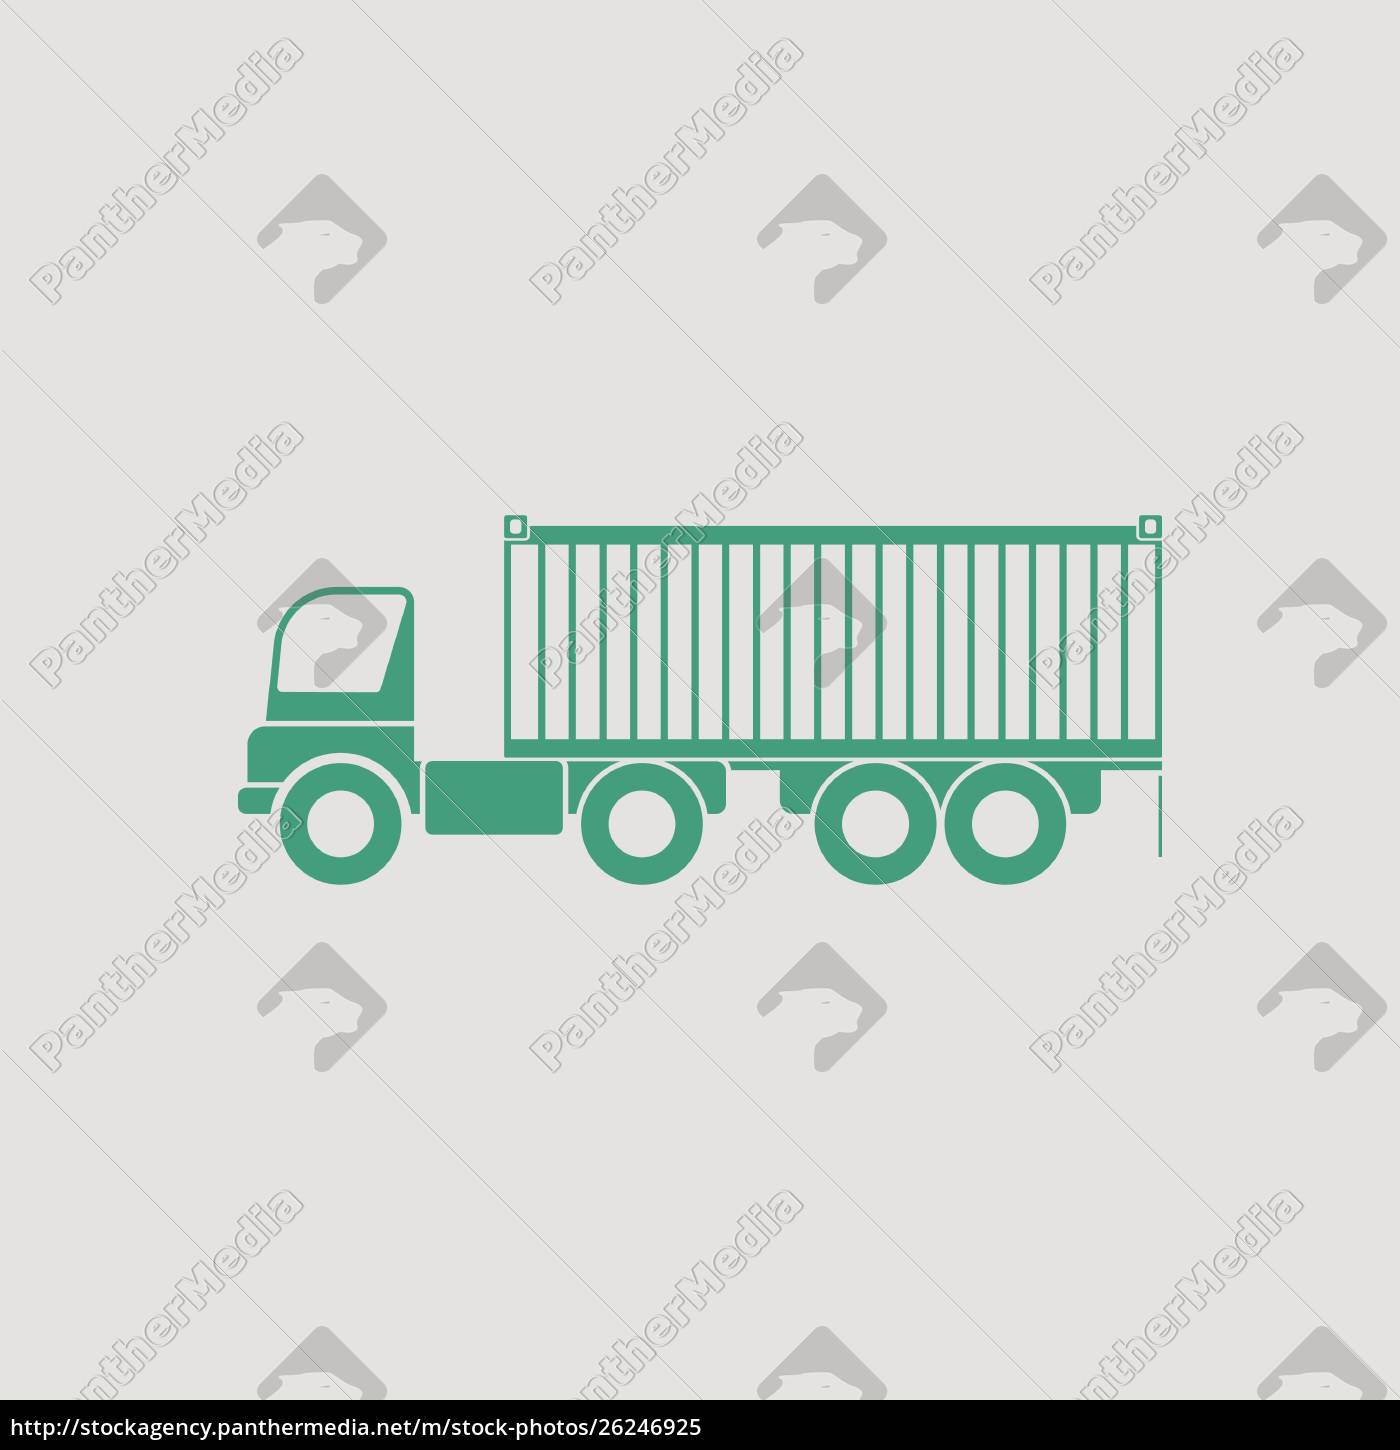 container, truck, icon., gray, background, with - 26246925